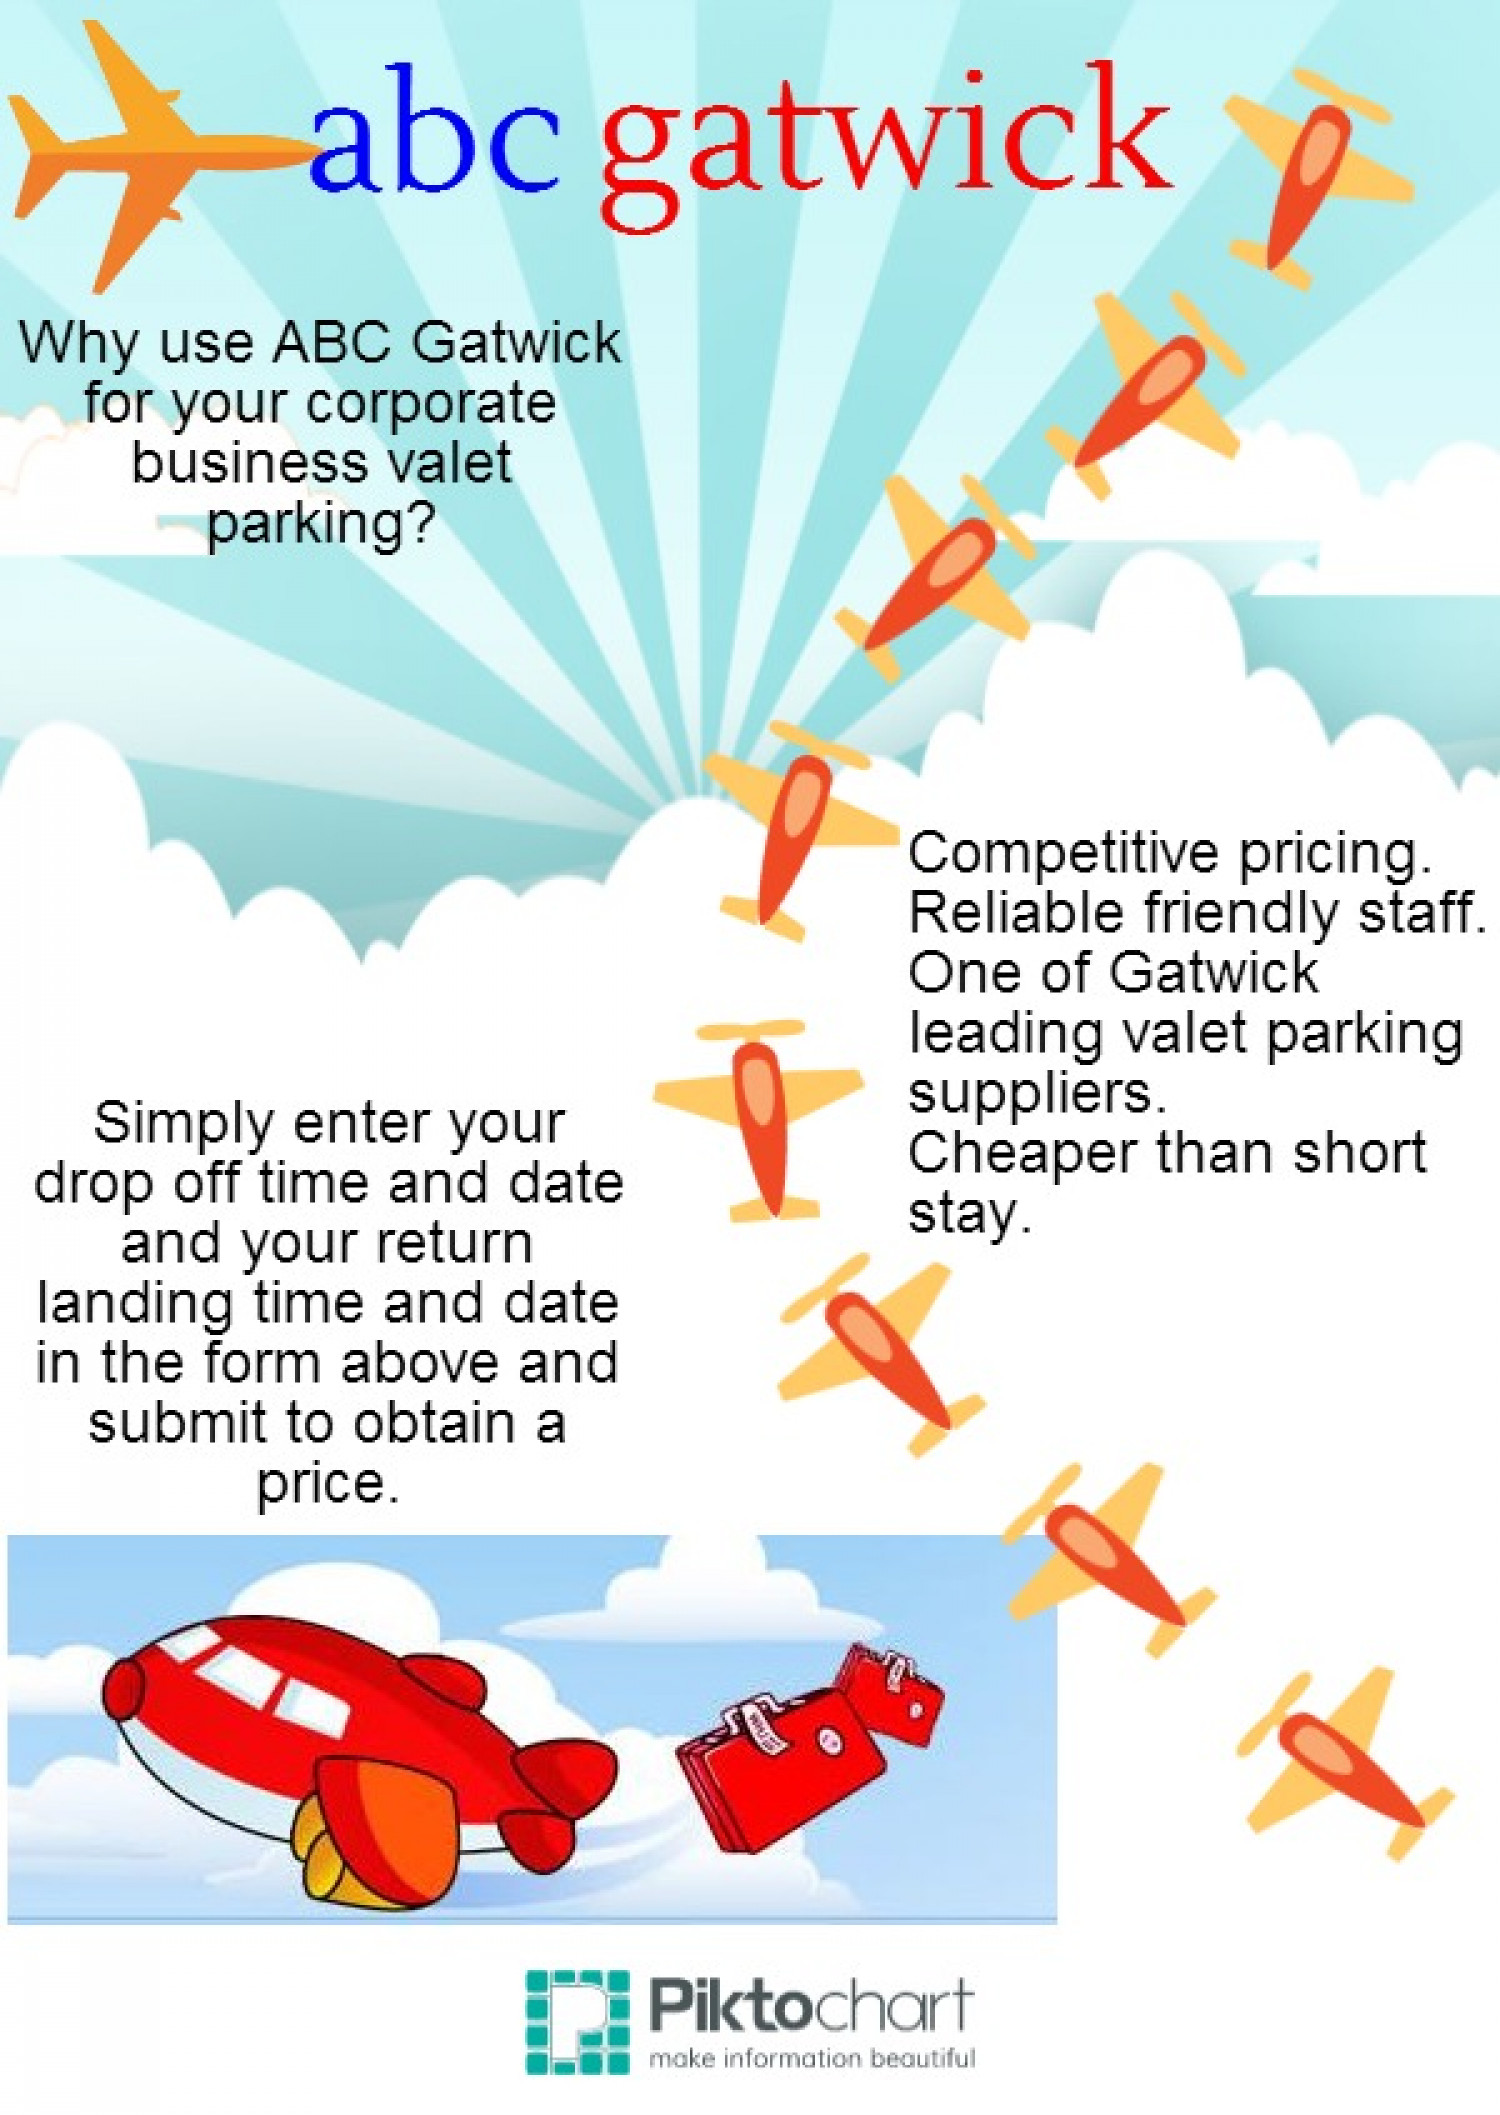 abc gatwick services Infographic